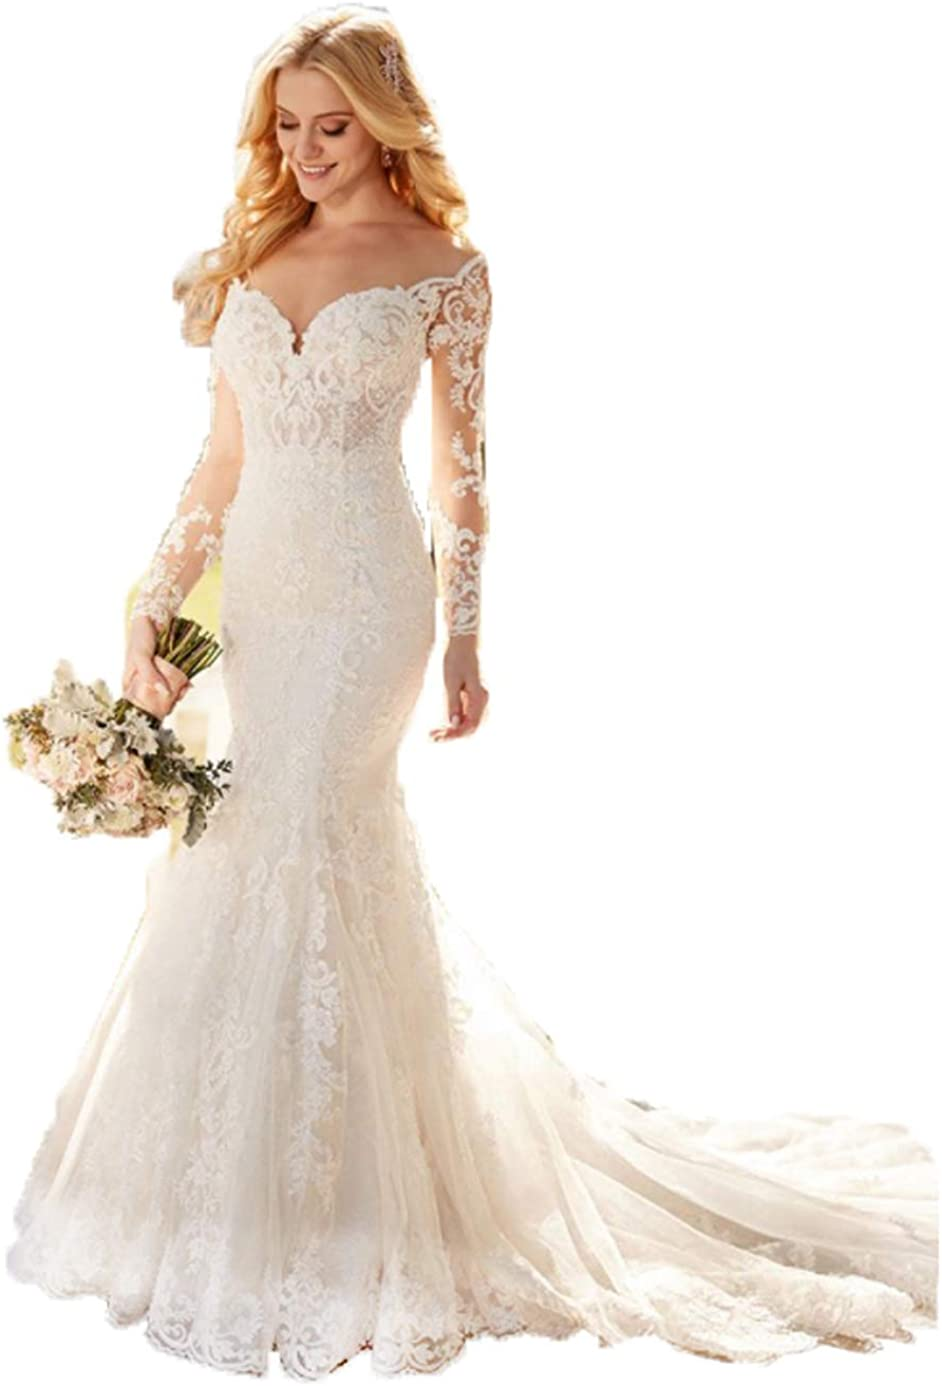 Mermaid Beach Sweetheart Neck A-Line Wedding Dress for Bride 2021 with Sleeves for Women